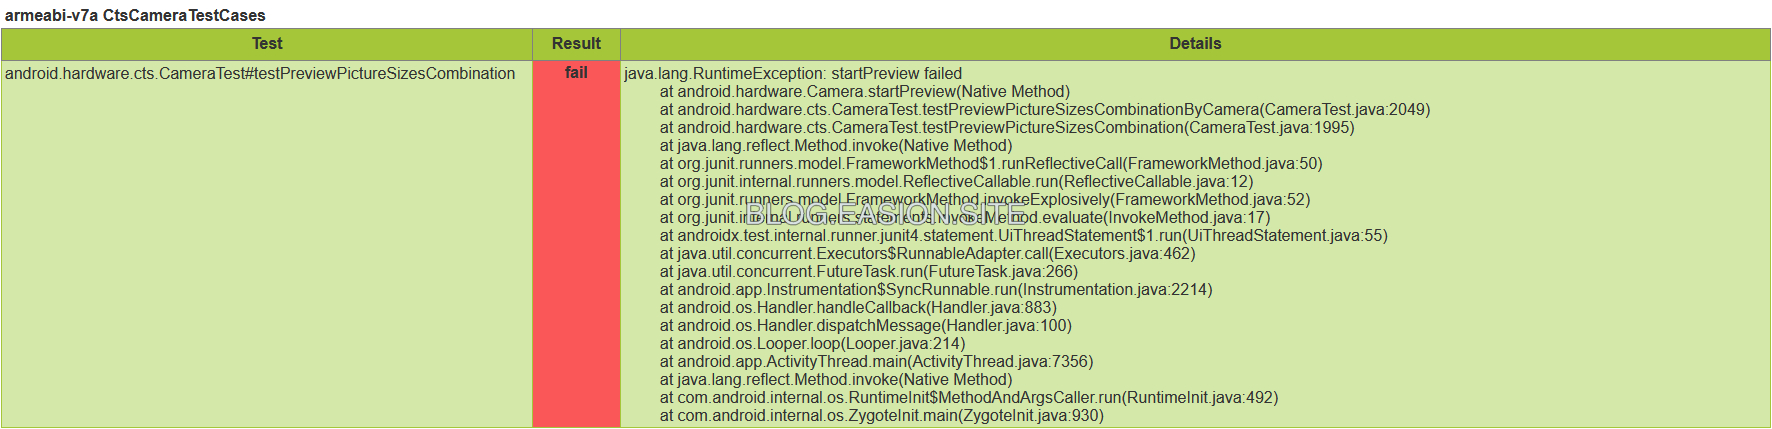 android.hardware.cts.CameraTest#testPreviewPictureSizesCombination java.lang.RuntimeException: startPreview failed at android.hardware.Camera.startPreview(Native Method) at android.hardware.cts.CameraTest.testPreviewPictureSizesCombinationByCamera(CameraTest.java:2049) at android.hardware.cts.CameraTest.testPreviewPictureSizesCombination(CameraTest.java:1995) at java.lang.reflect.Method.invoke(Native Method) at org.junit.runners.model.FrameworkMethod$1.runReflectiveCall(FrameworkMethod.java:50) at org.junit.internal.runners.model.ReflectiveCallable.run(ReflectiveCallable.java:12) at org.junit.runners.model.FrameworkMethod.invokeExplosively(FrameworkMethod.java:52) at org.junit.internal.runners.statements.InvokeMethod.evaluate(InvokeMethod.java:17) at androidx.test.internal.runner.junit4.statement.UiThreadStatement$1.run(UiThreadStatement.java:55) at java.util.concurrent.Executors$RunnableAdapter.call(Executors.java:462) at java.util.concurrent.FutureTask.run(FutureTask.java:266) at android.app.Instrumentation$SyncRunnable.run(Instrumentation.java:2214) at android.os.Handler.handleCallback(Handler.java:883) at android.os.Handler.dispatchMessage(Handler.java:100) at android.os.Looper.loop(Looper.java:214) at android.app.ActivityThread.main(ActivityThread.java:7356) at java.lang.reflect.Method.invoke(Native Method) at com.android.internal.os.RuntimeInit$MethodAndArgsCaller.run(RuntimeInit.java:492) at com.android.internal.os.ZygoteInit.main(ZygoteInit.java:930)